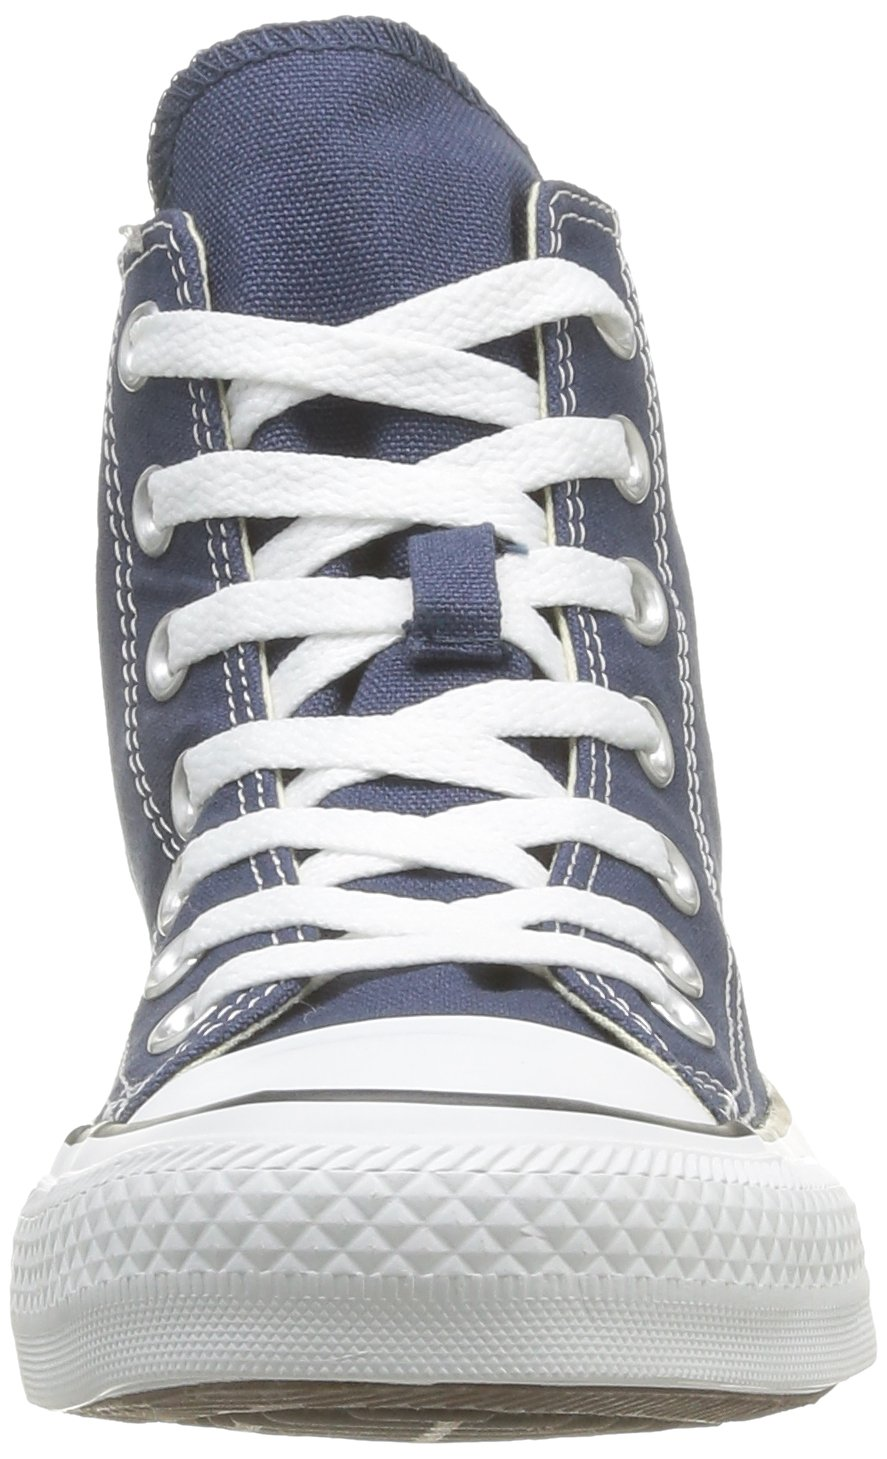 Converse Unisex Chuck Taylor in All-Star High-Top Casual Sneakers in Taylor Classic Style and Color and Durable Canvas Uppers B006IPB2FI 11 D(M) US|Navy 480212